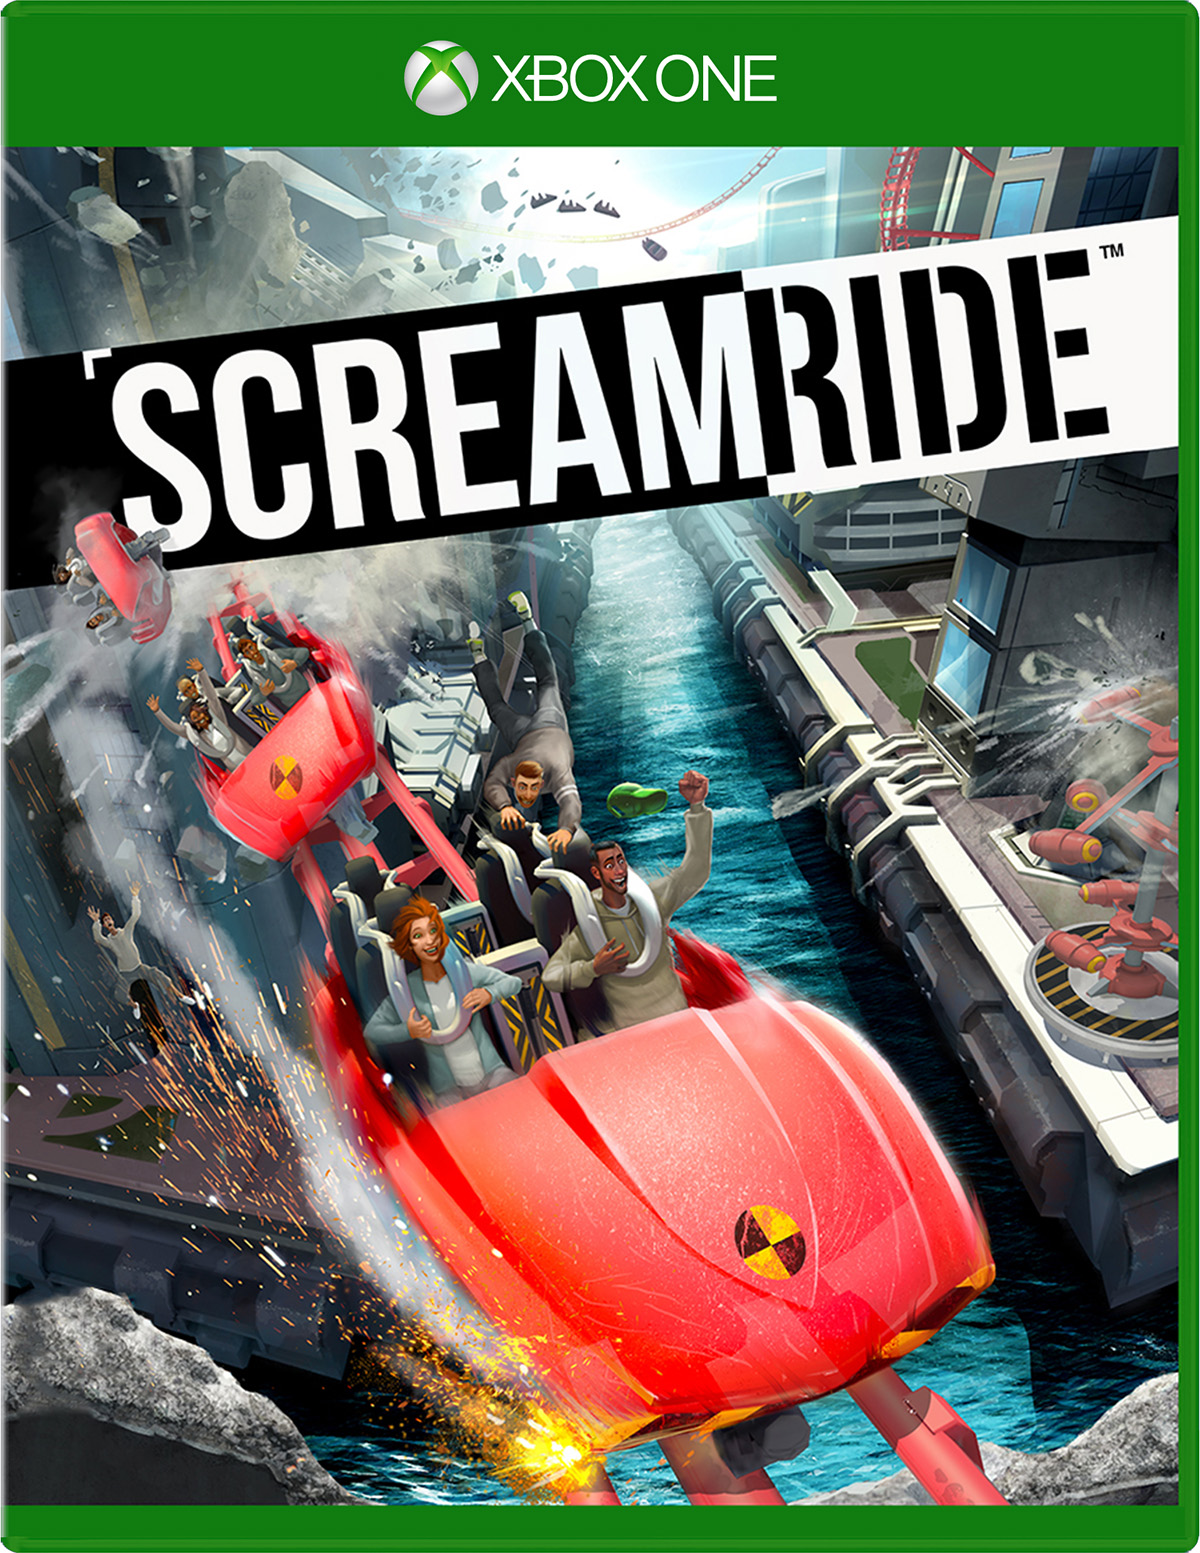 Screamride for Xbox One (Blu-ray Edition)